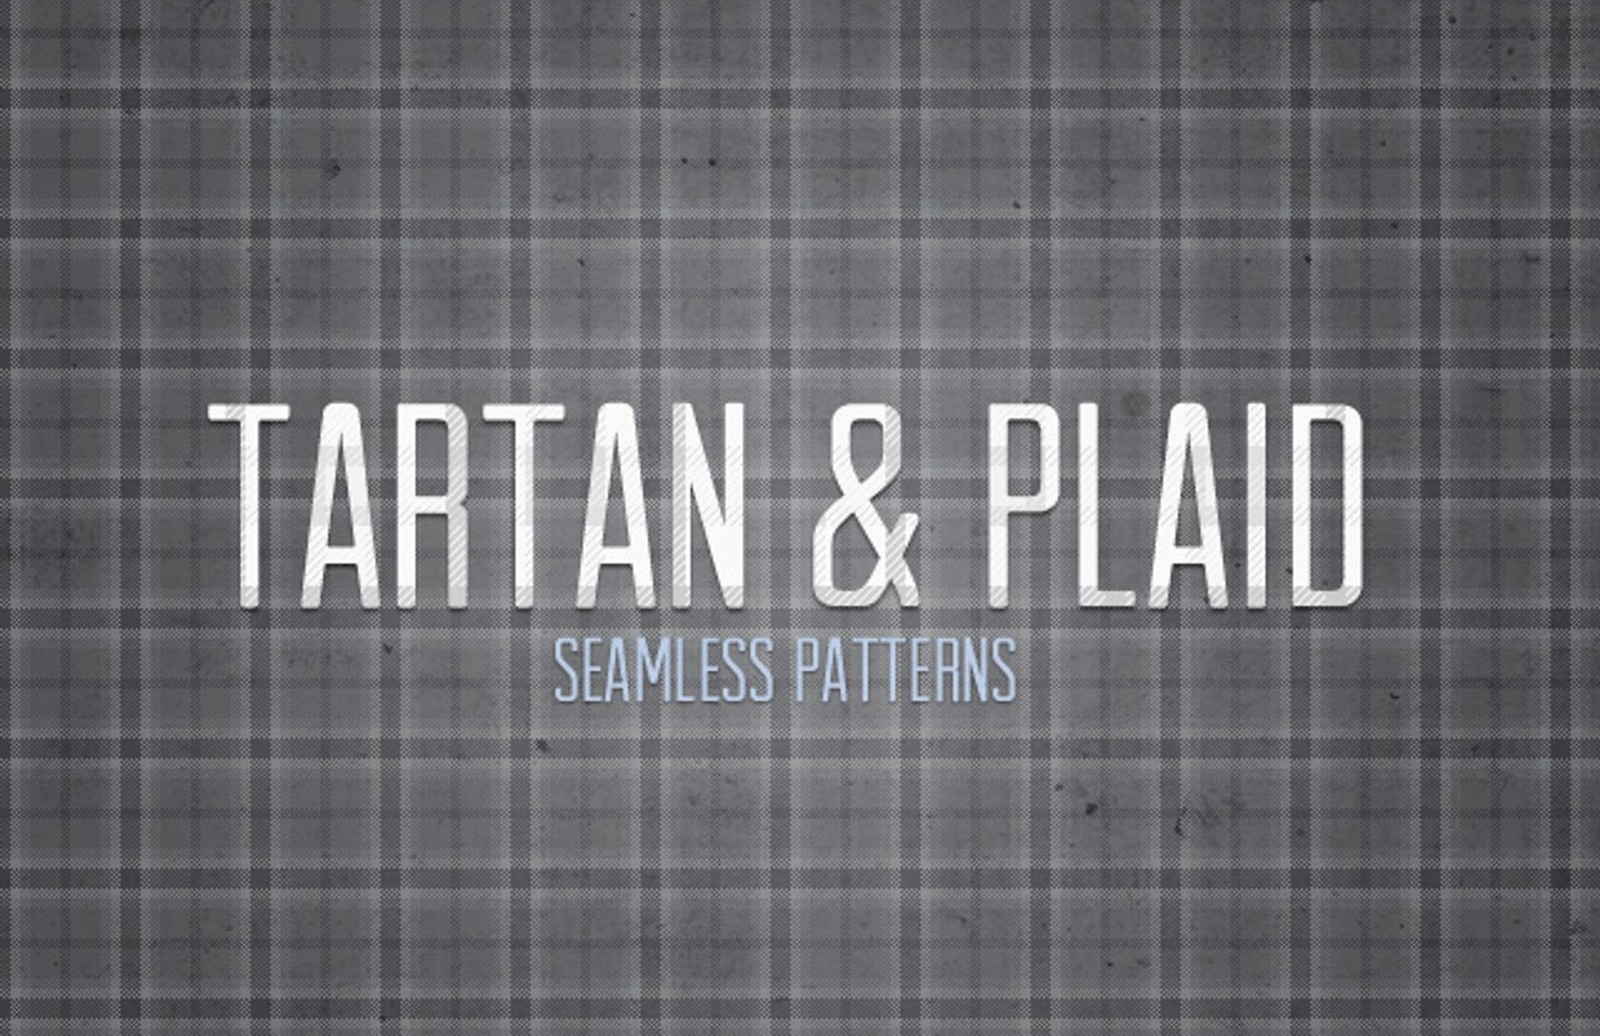 Tartan  Plaid  Patterns  Preview1